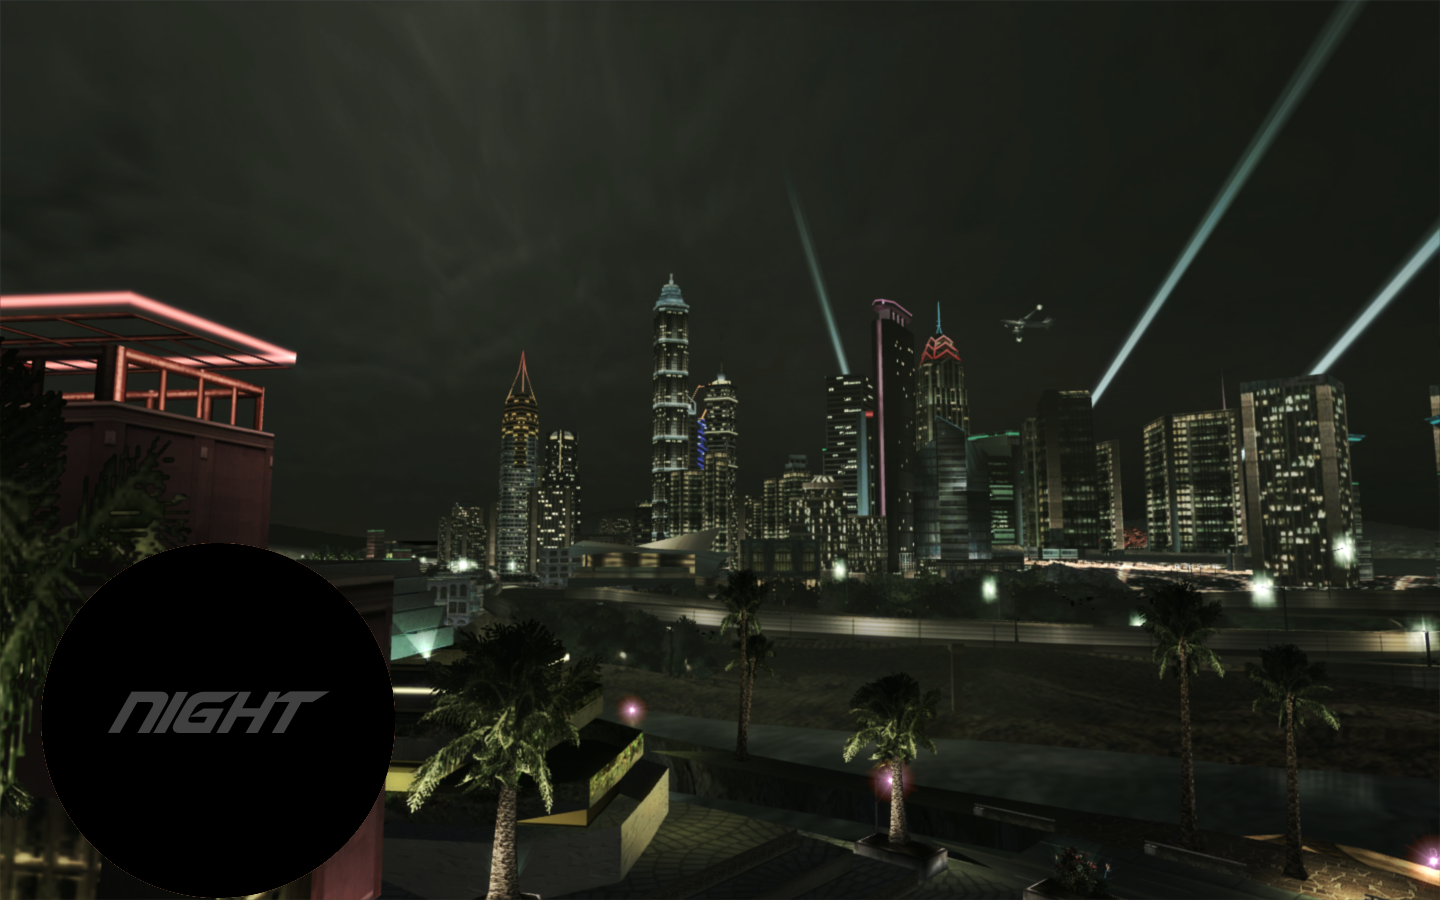 Nfsmods High Quality Skybox For Need For Speed Underground 2